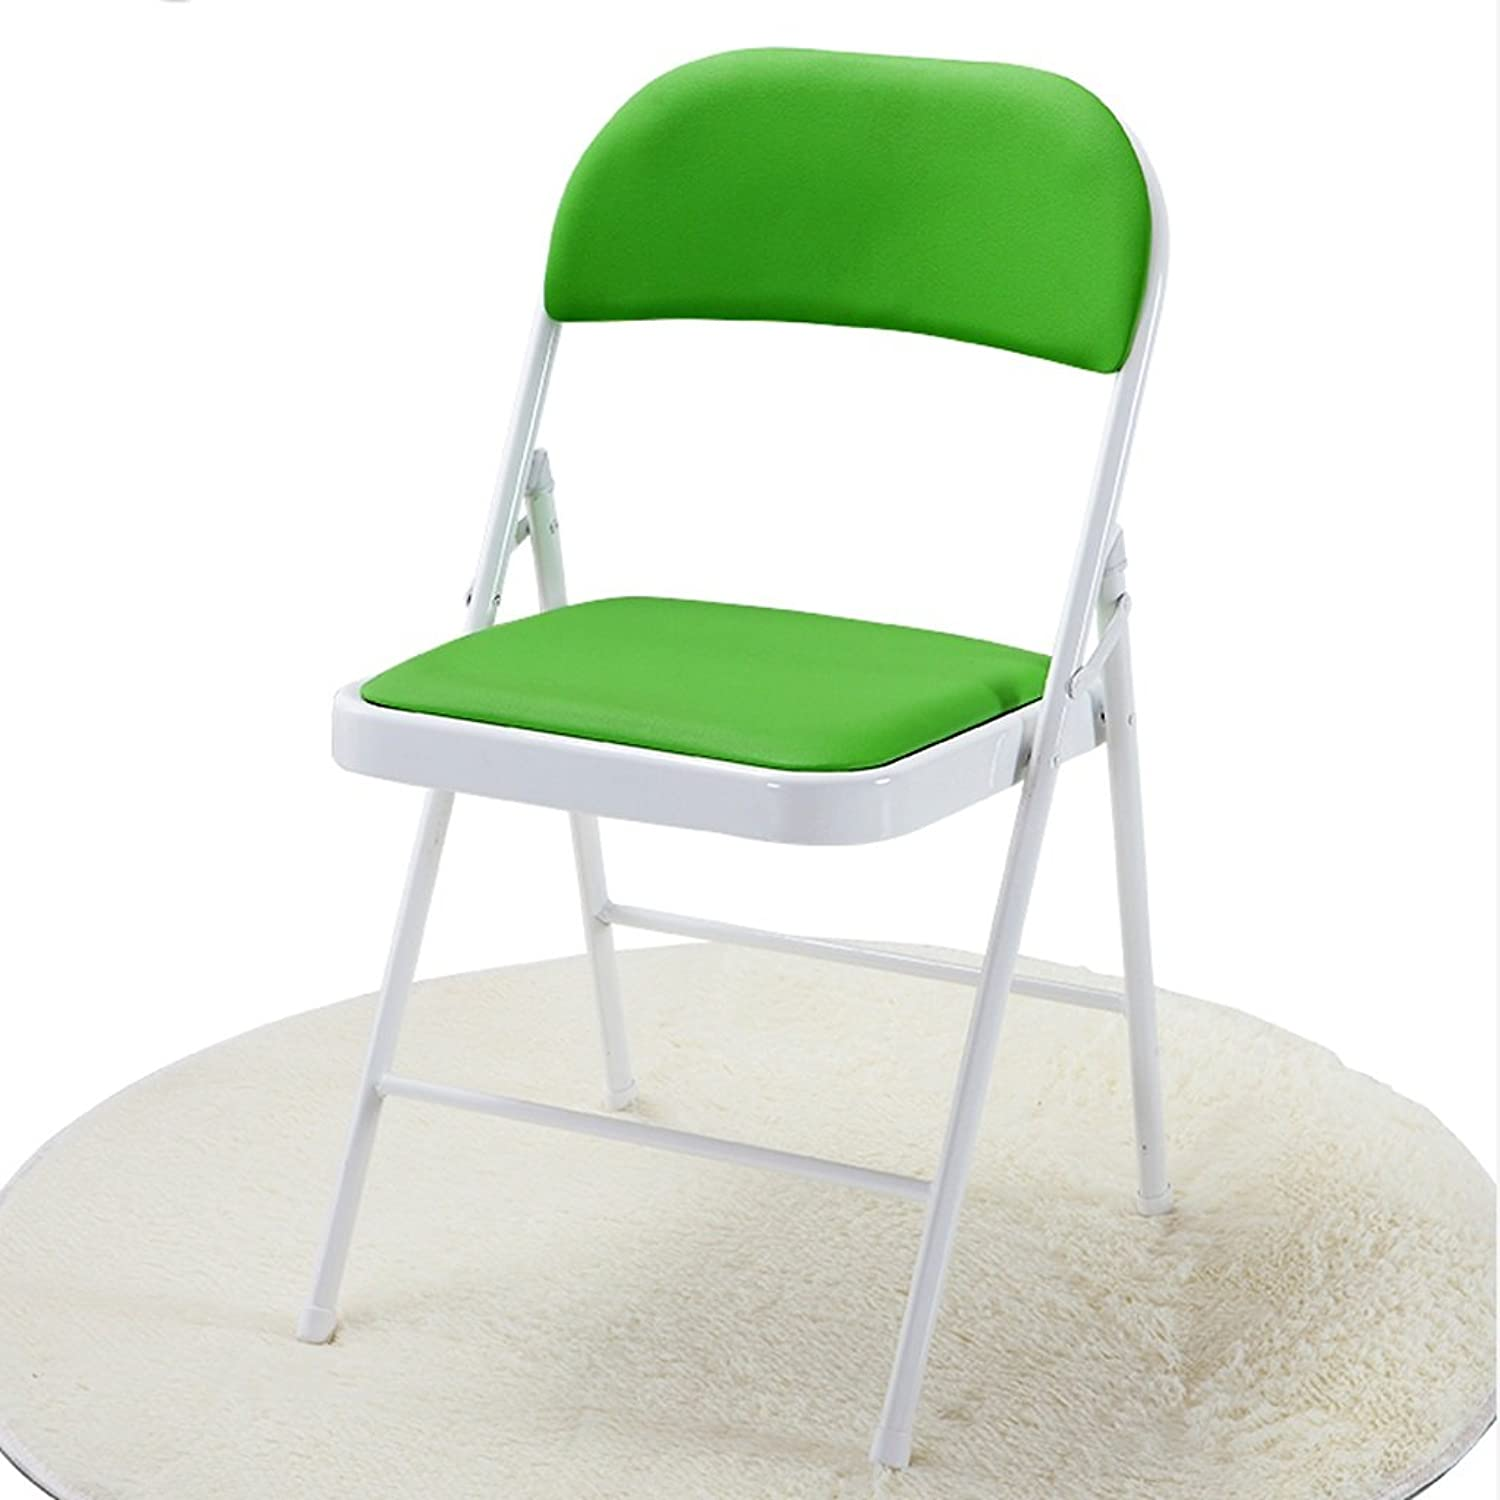 Chair Conference Folding Chair Home Computer Casual Chair Simple Office Chair Stool Stylish Dining Chair (color   Green)